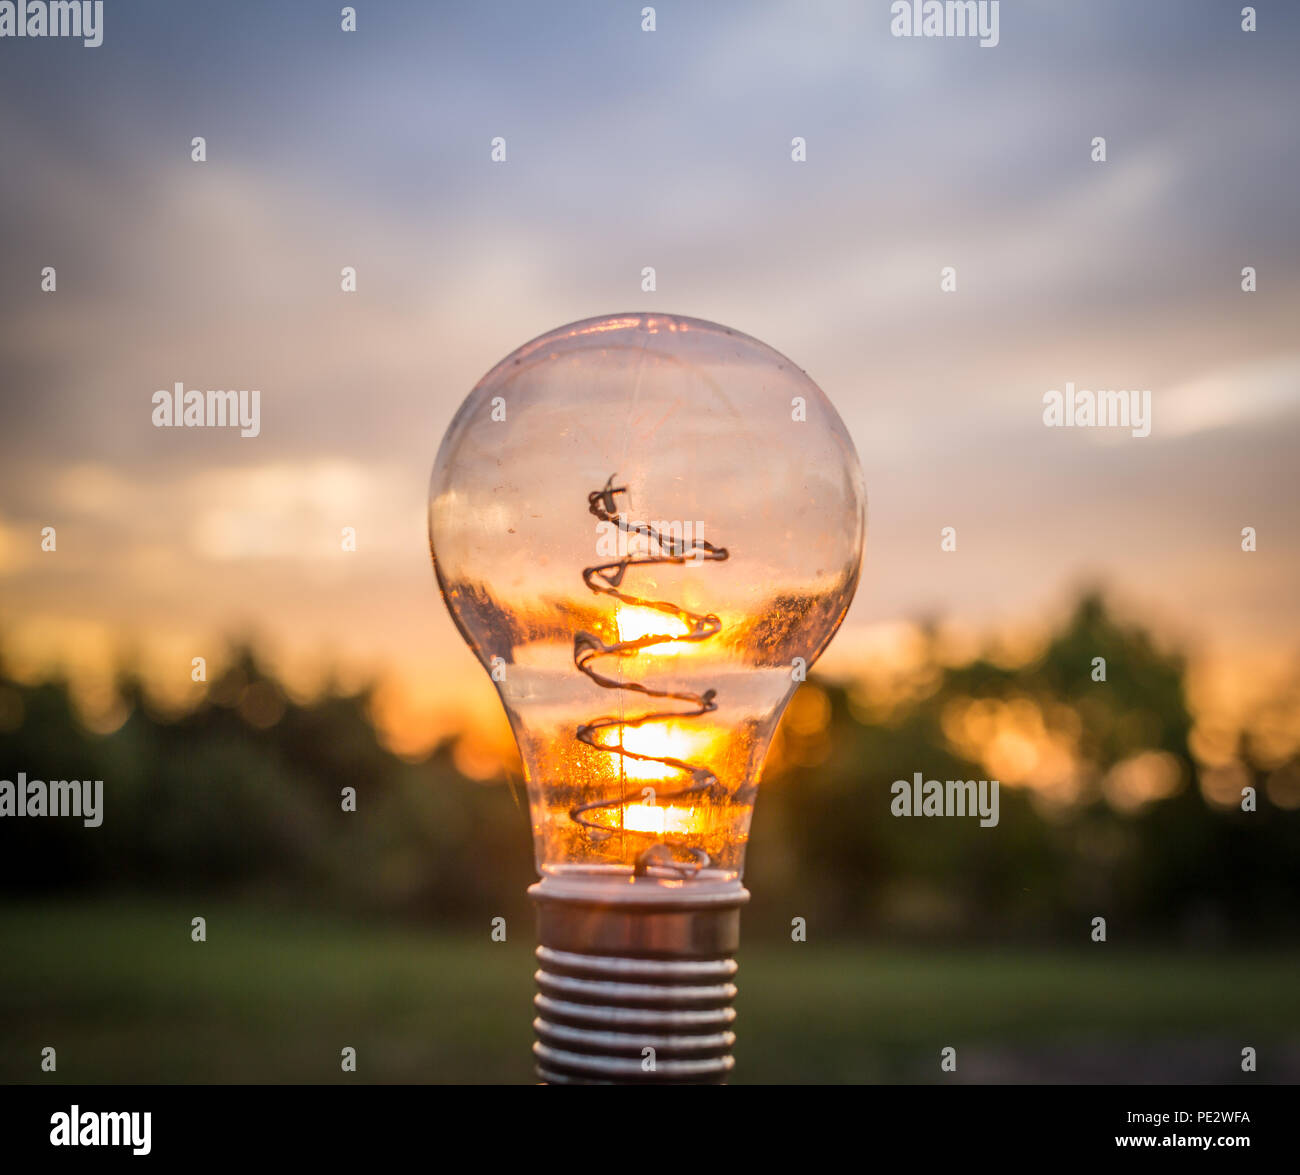 A light bulb outside during a sunset. - Stock Image